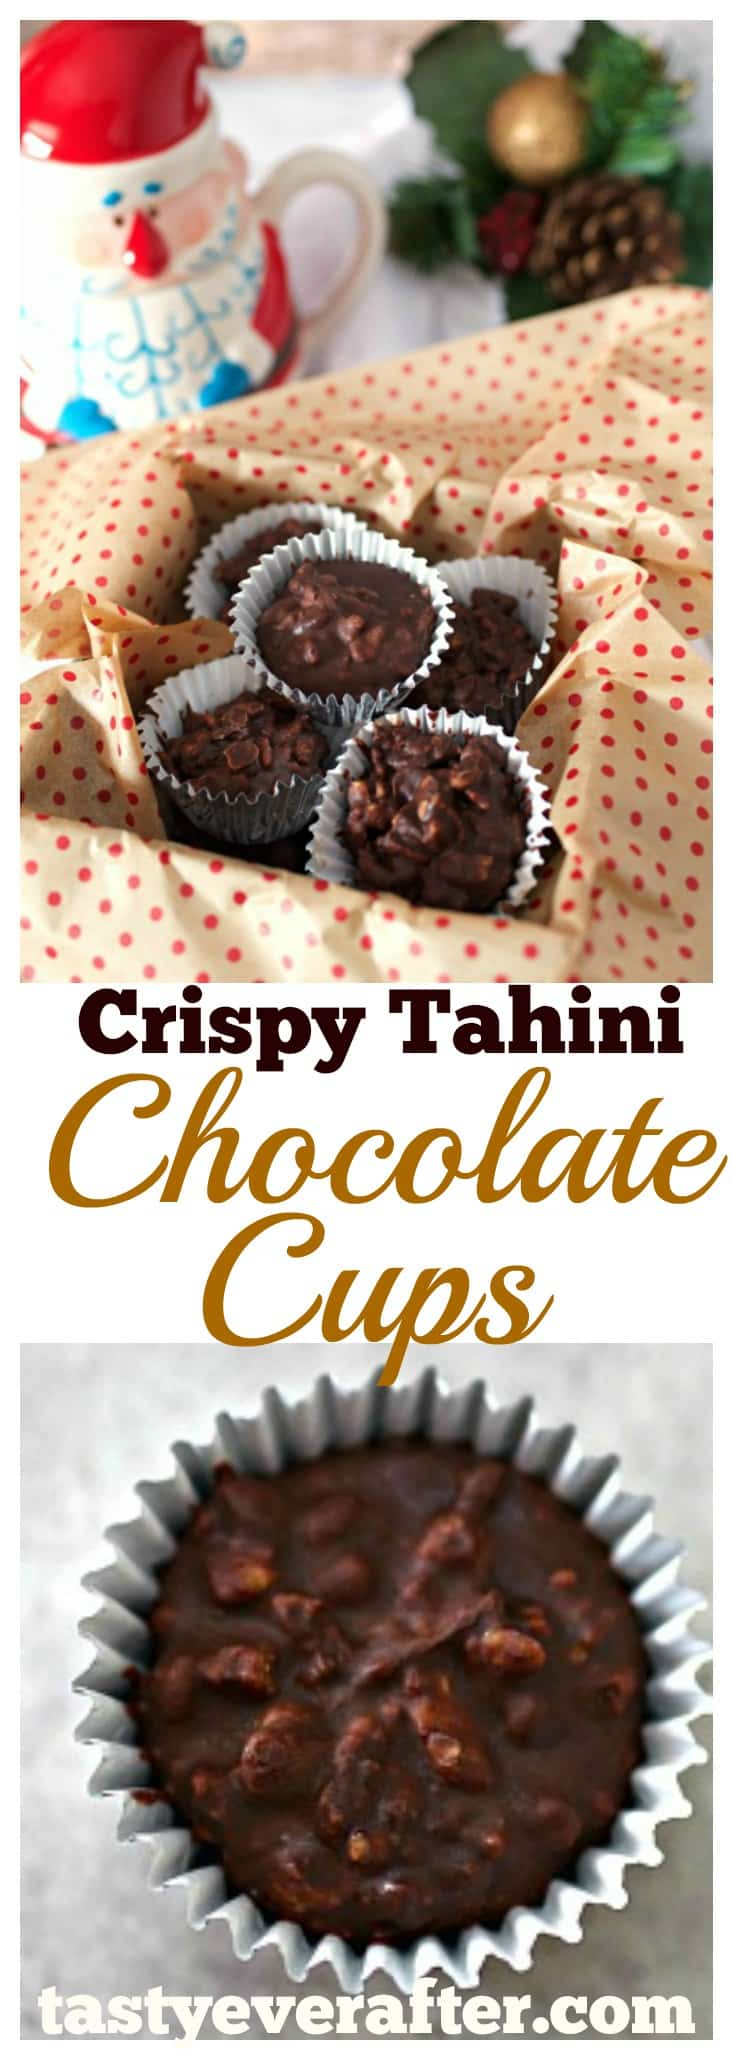 Crispy Tahini Chocolate Cups